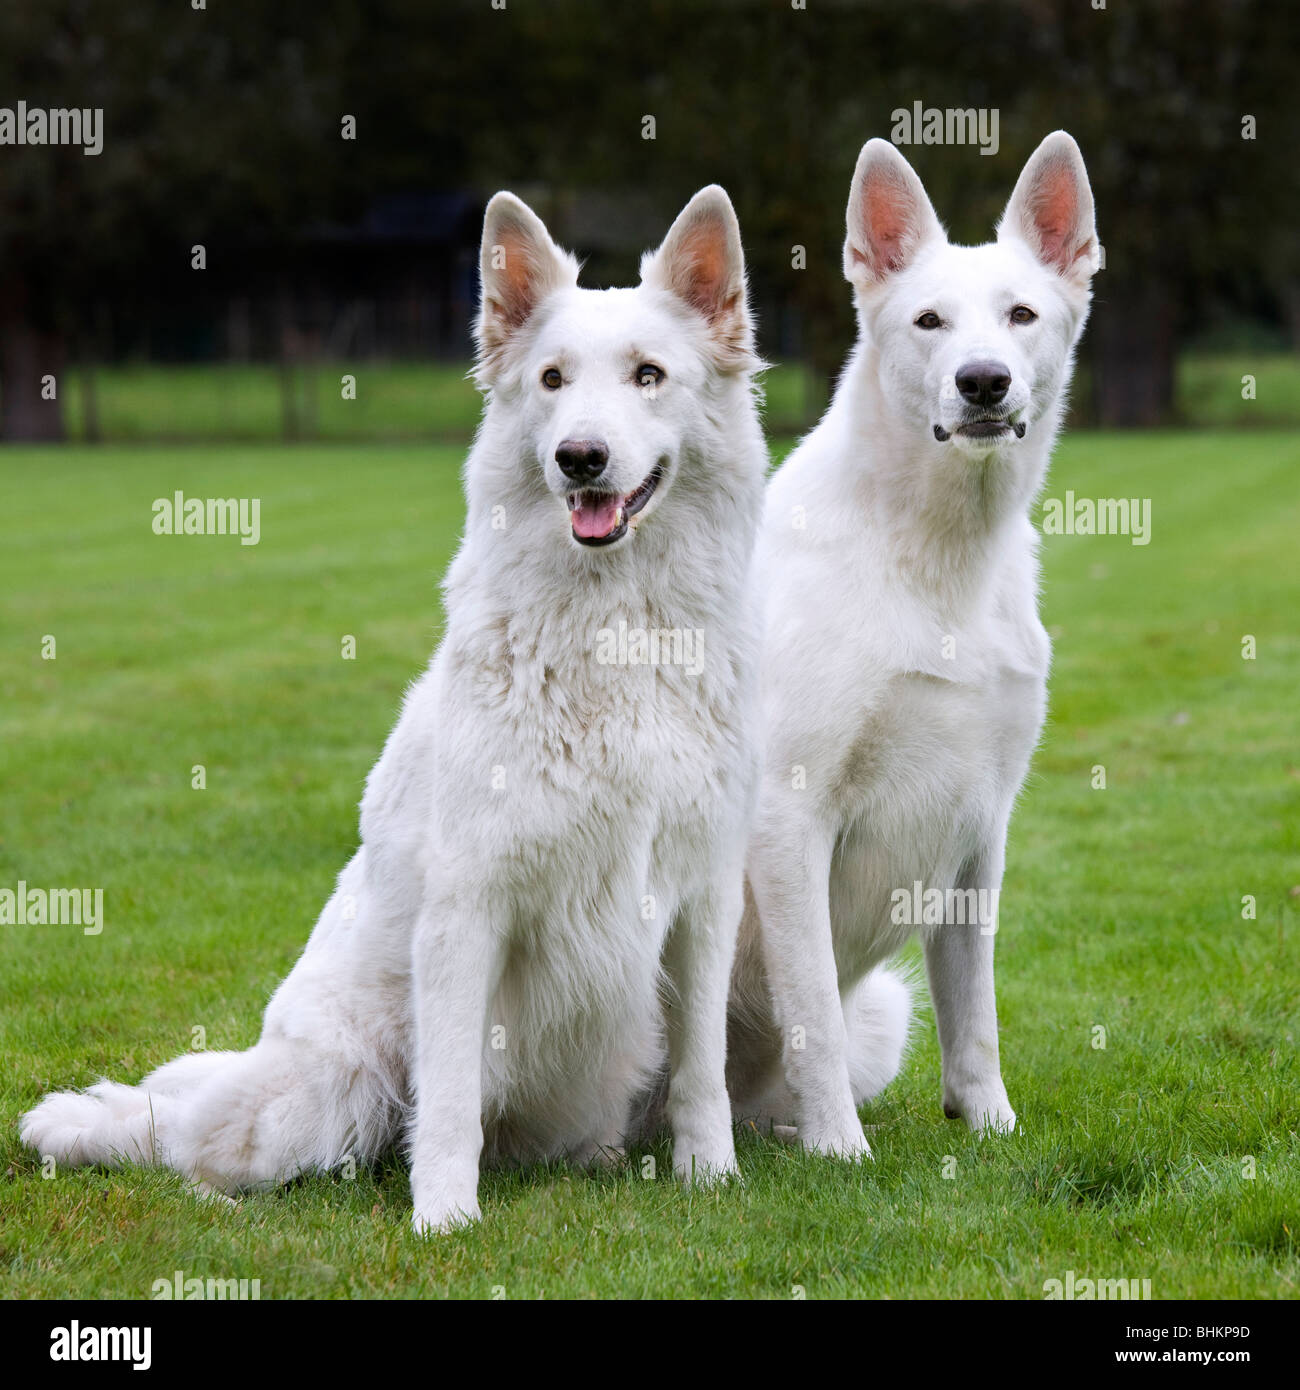 Two White Swiss Shepherd Dogs (Canis lupus familiaris) in garden - Stock Image